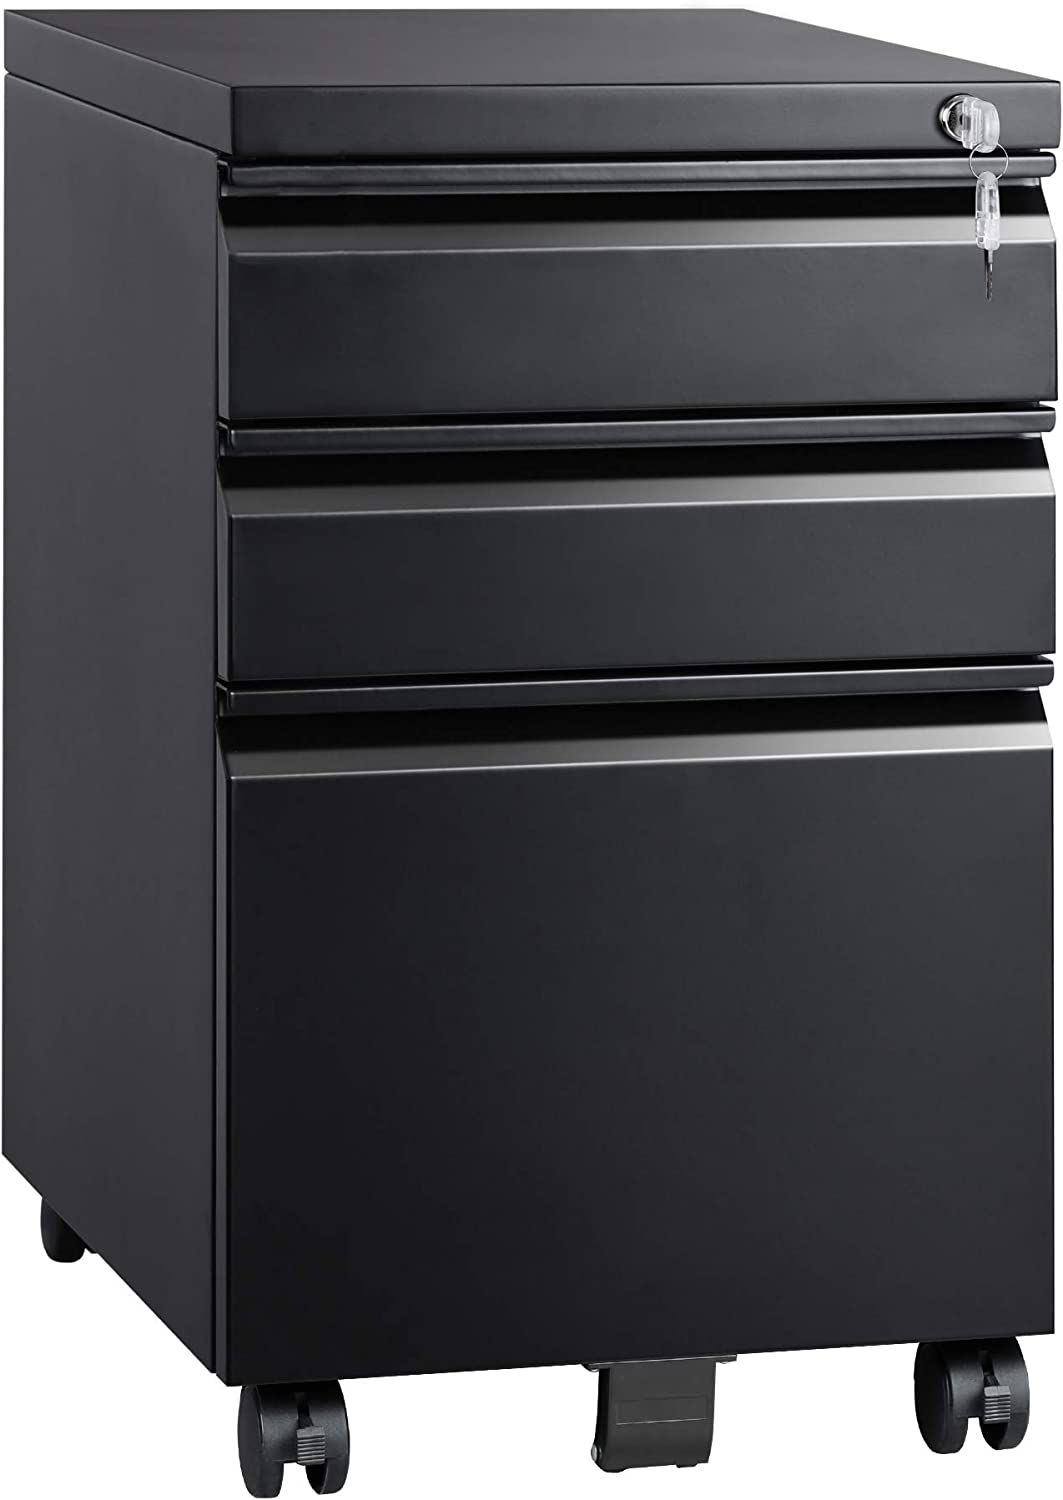 Devaise 3 Drawer Mobile File Cabinet With Lock Metal Filing Cabinet Legal Letter Size Fully Assembled Except Wheels Black Office Products